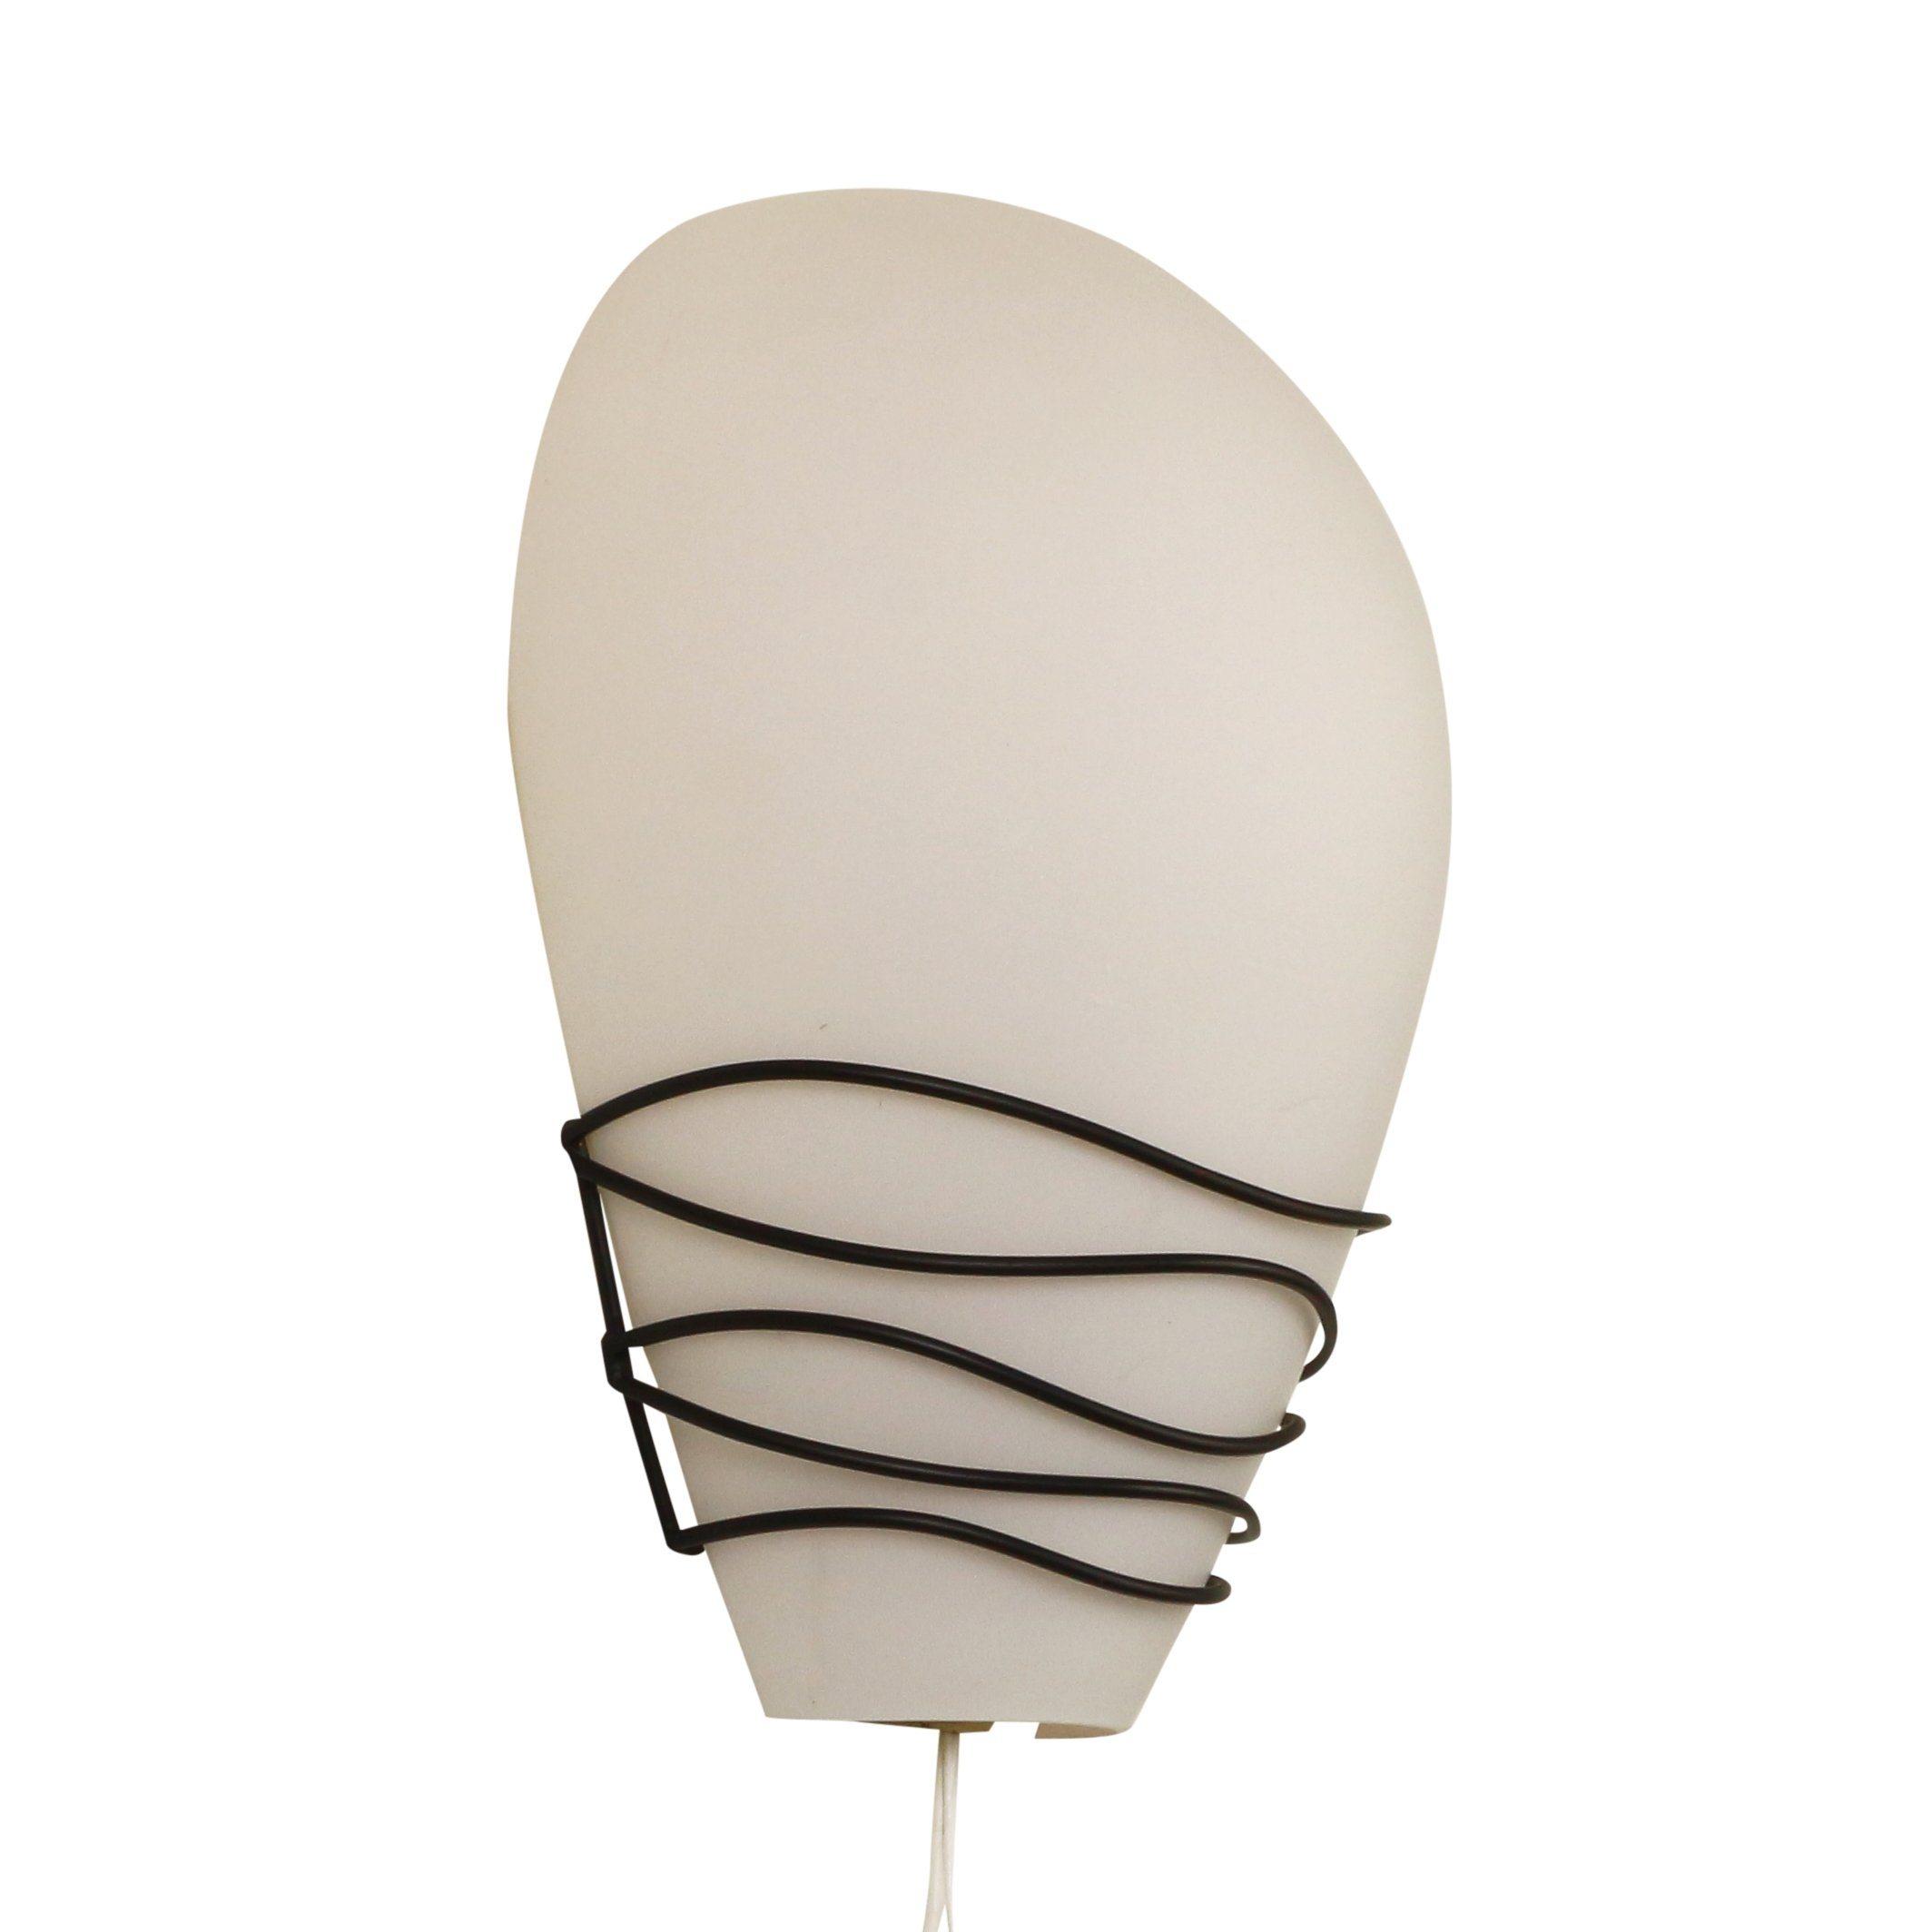 Rare philips wall light by louis kalff made of milk glass and black rare philips wall light by louis kalff made of milk glass and black wire 1950s aloadofball Choice Image